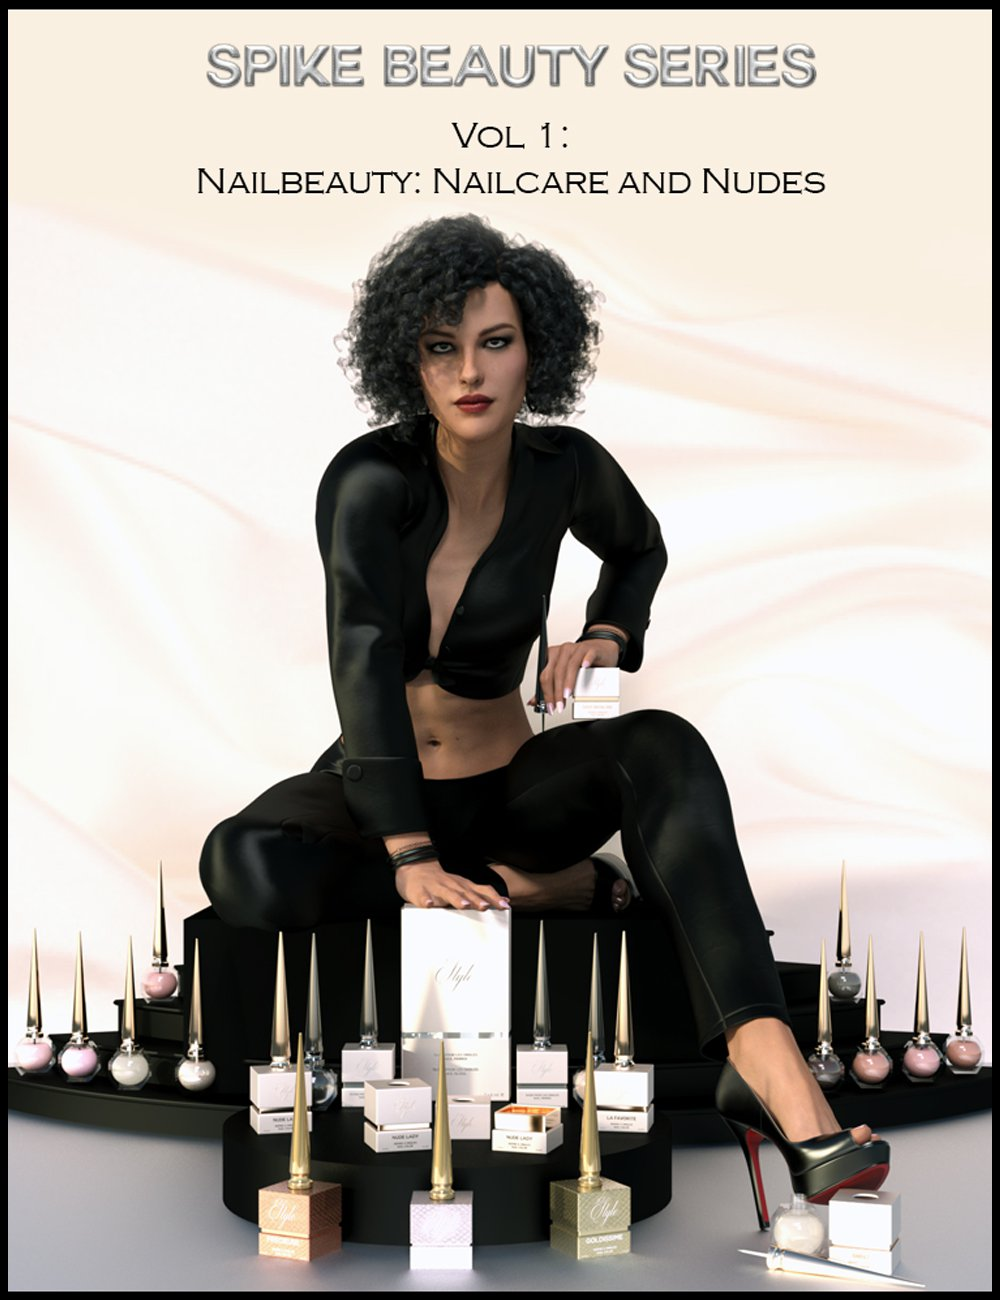 Spike Beauty Set Vol. 1: Nailcare, Nudes and Metallic Nudes_DAZ3D下载站